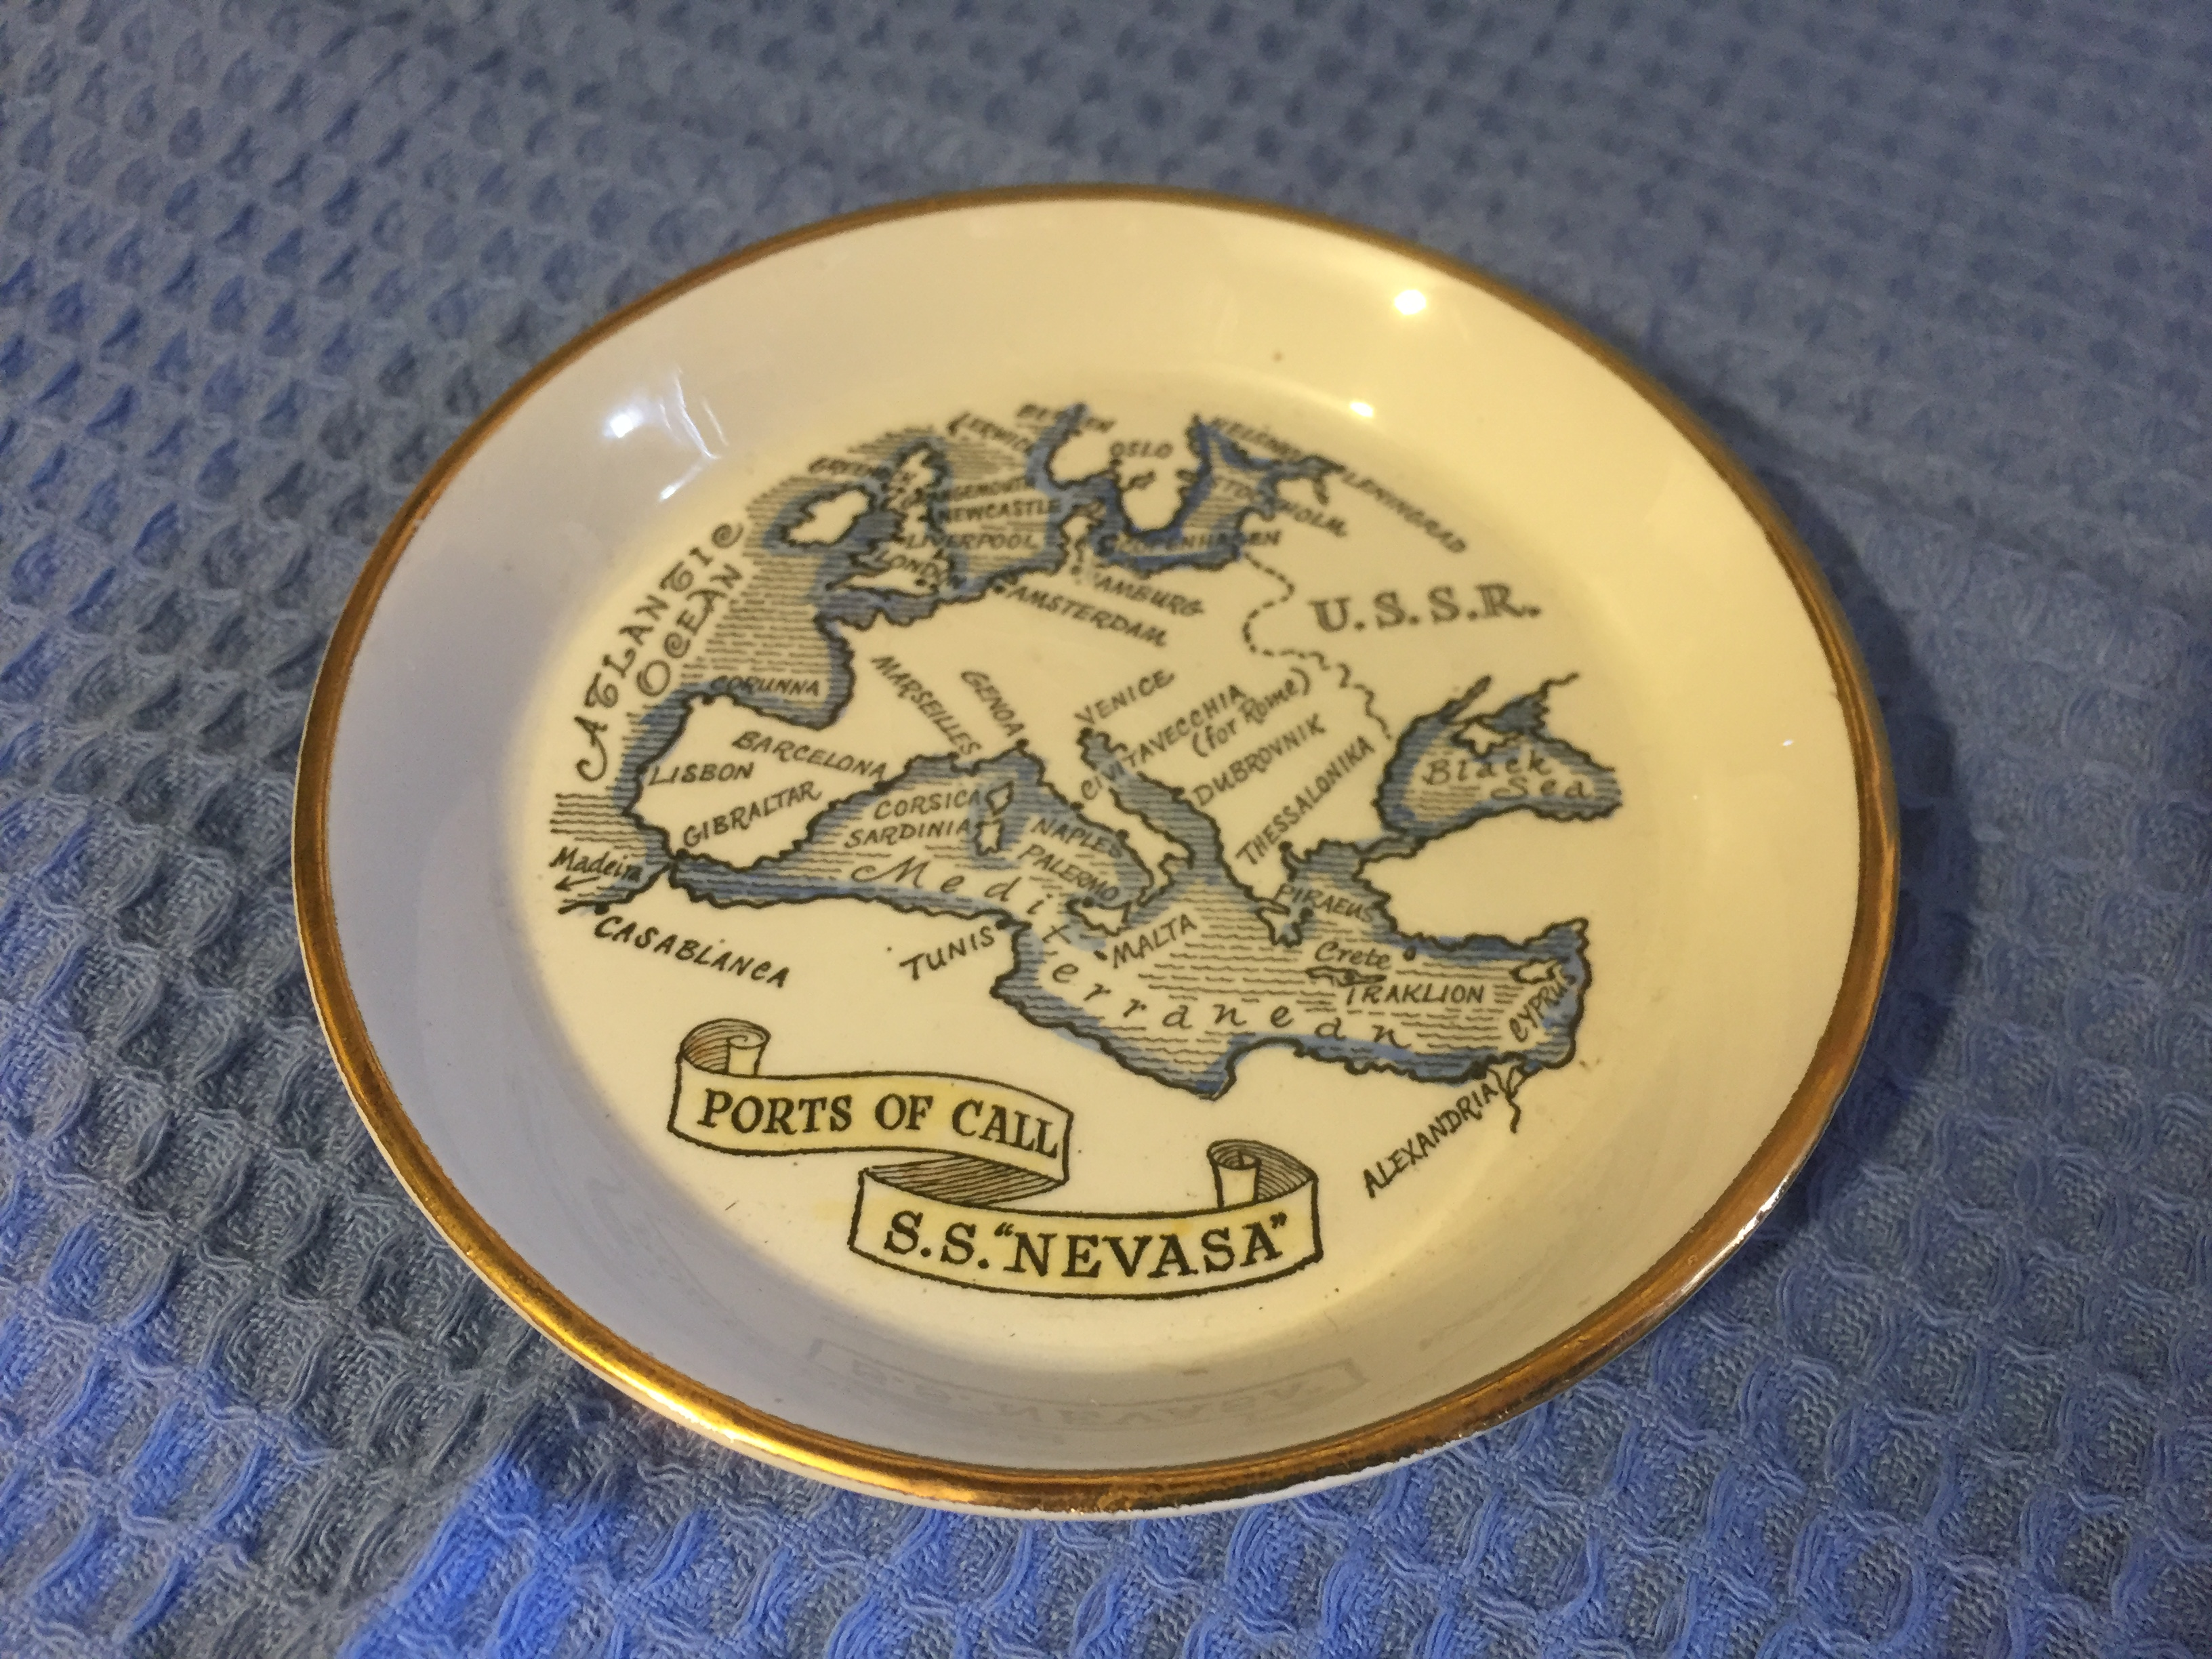 SOUVENIR MAP DISH FROM THE B.I.S.N.Co. VESSEL THE SS NEVASA